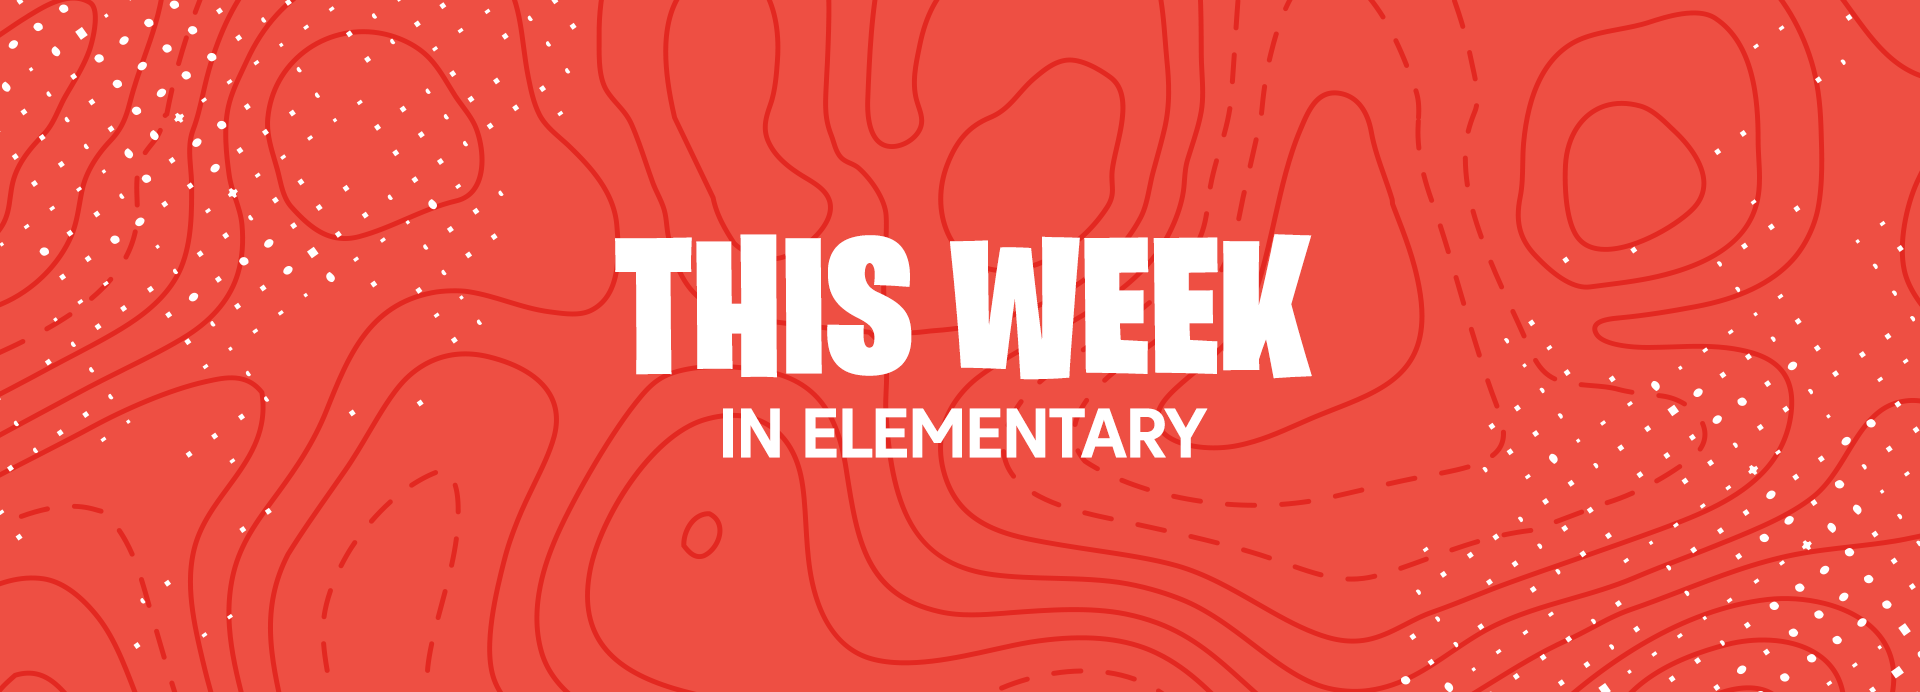 This Week in Elementary